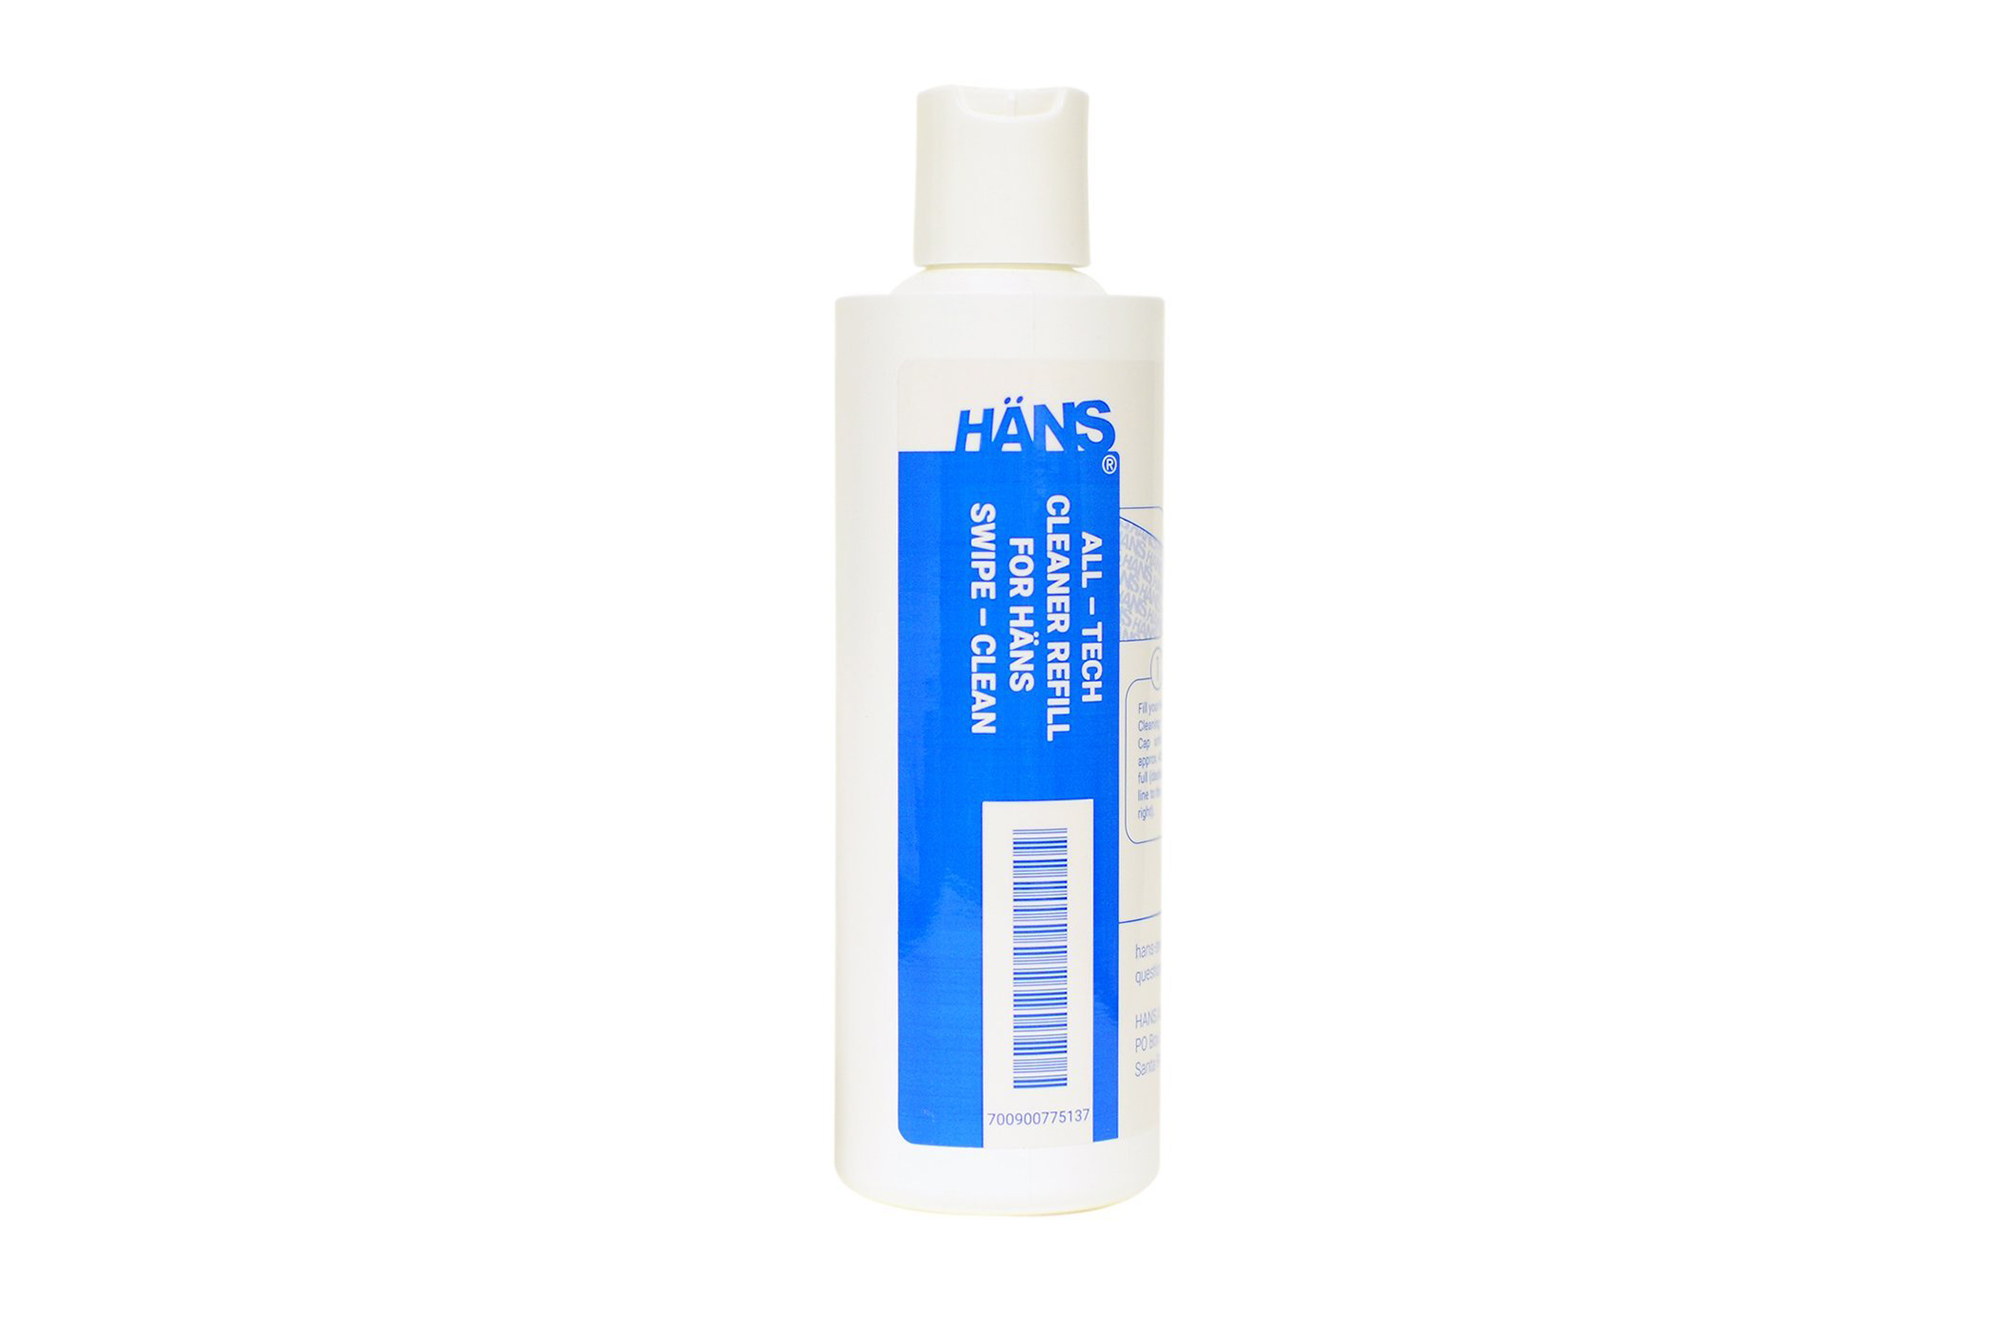 HÄNS Cleaning Solution